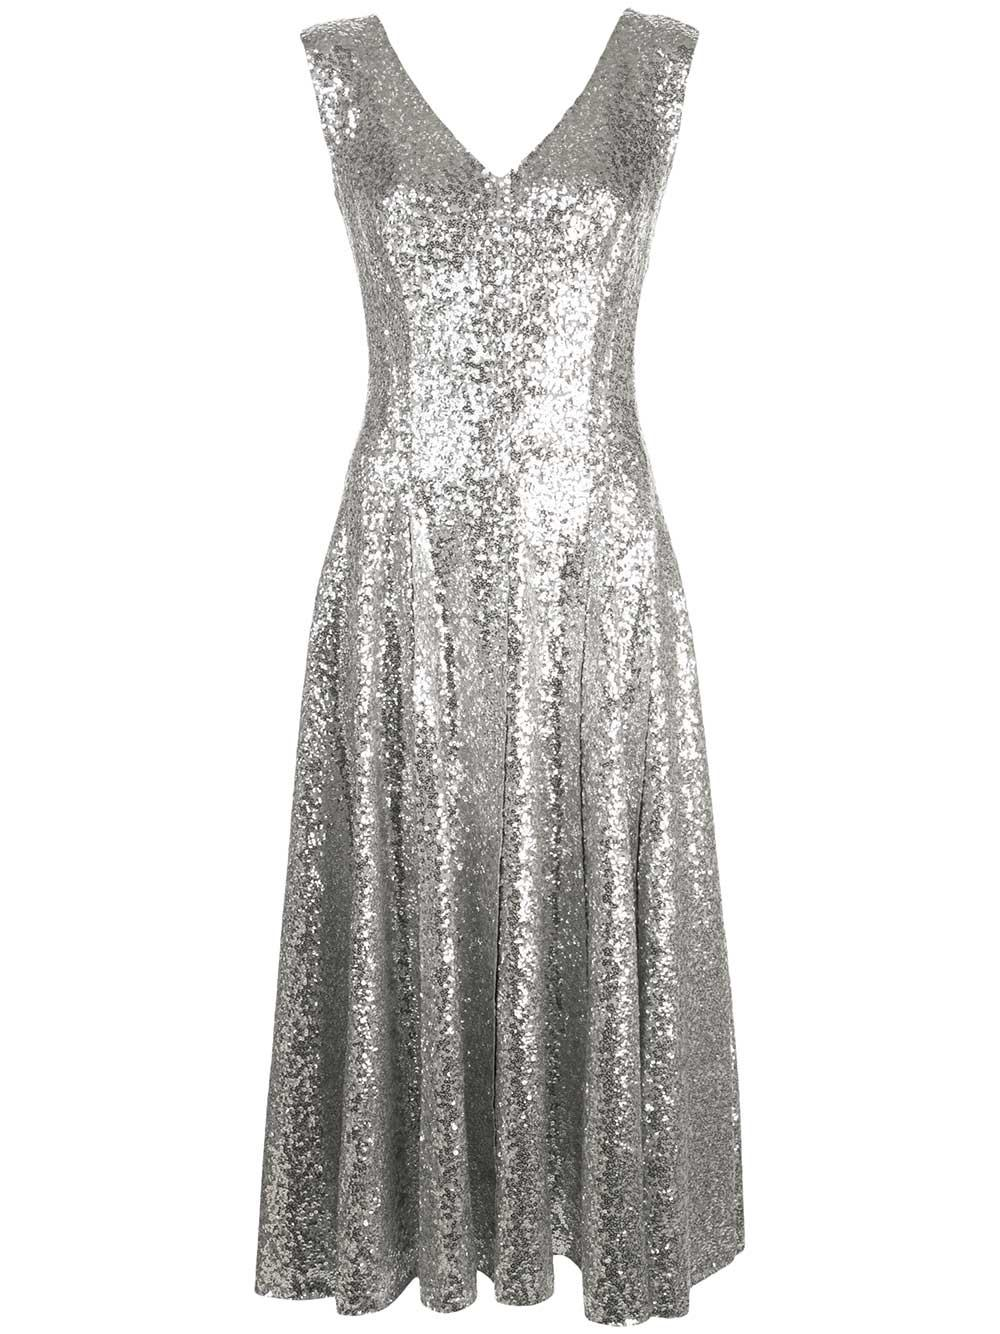 Overlapping Sequin Grace Dress Item # ST4293SQ160449